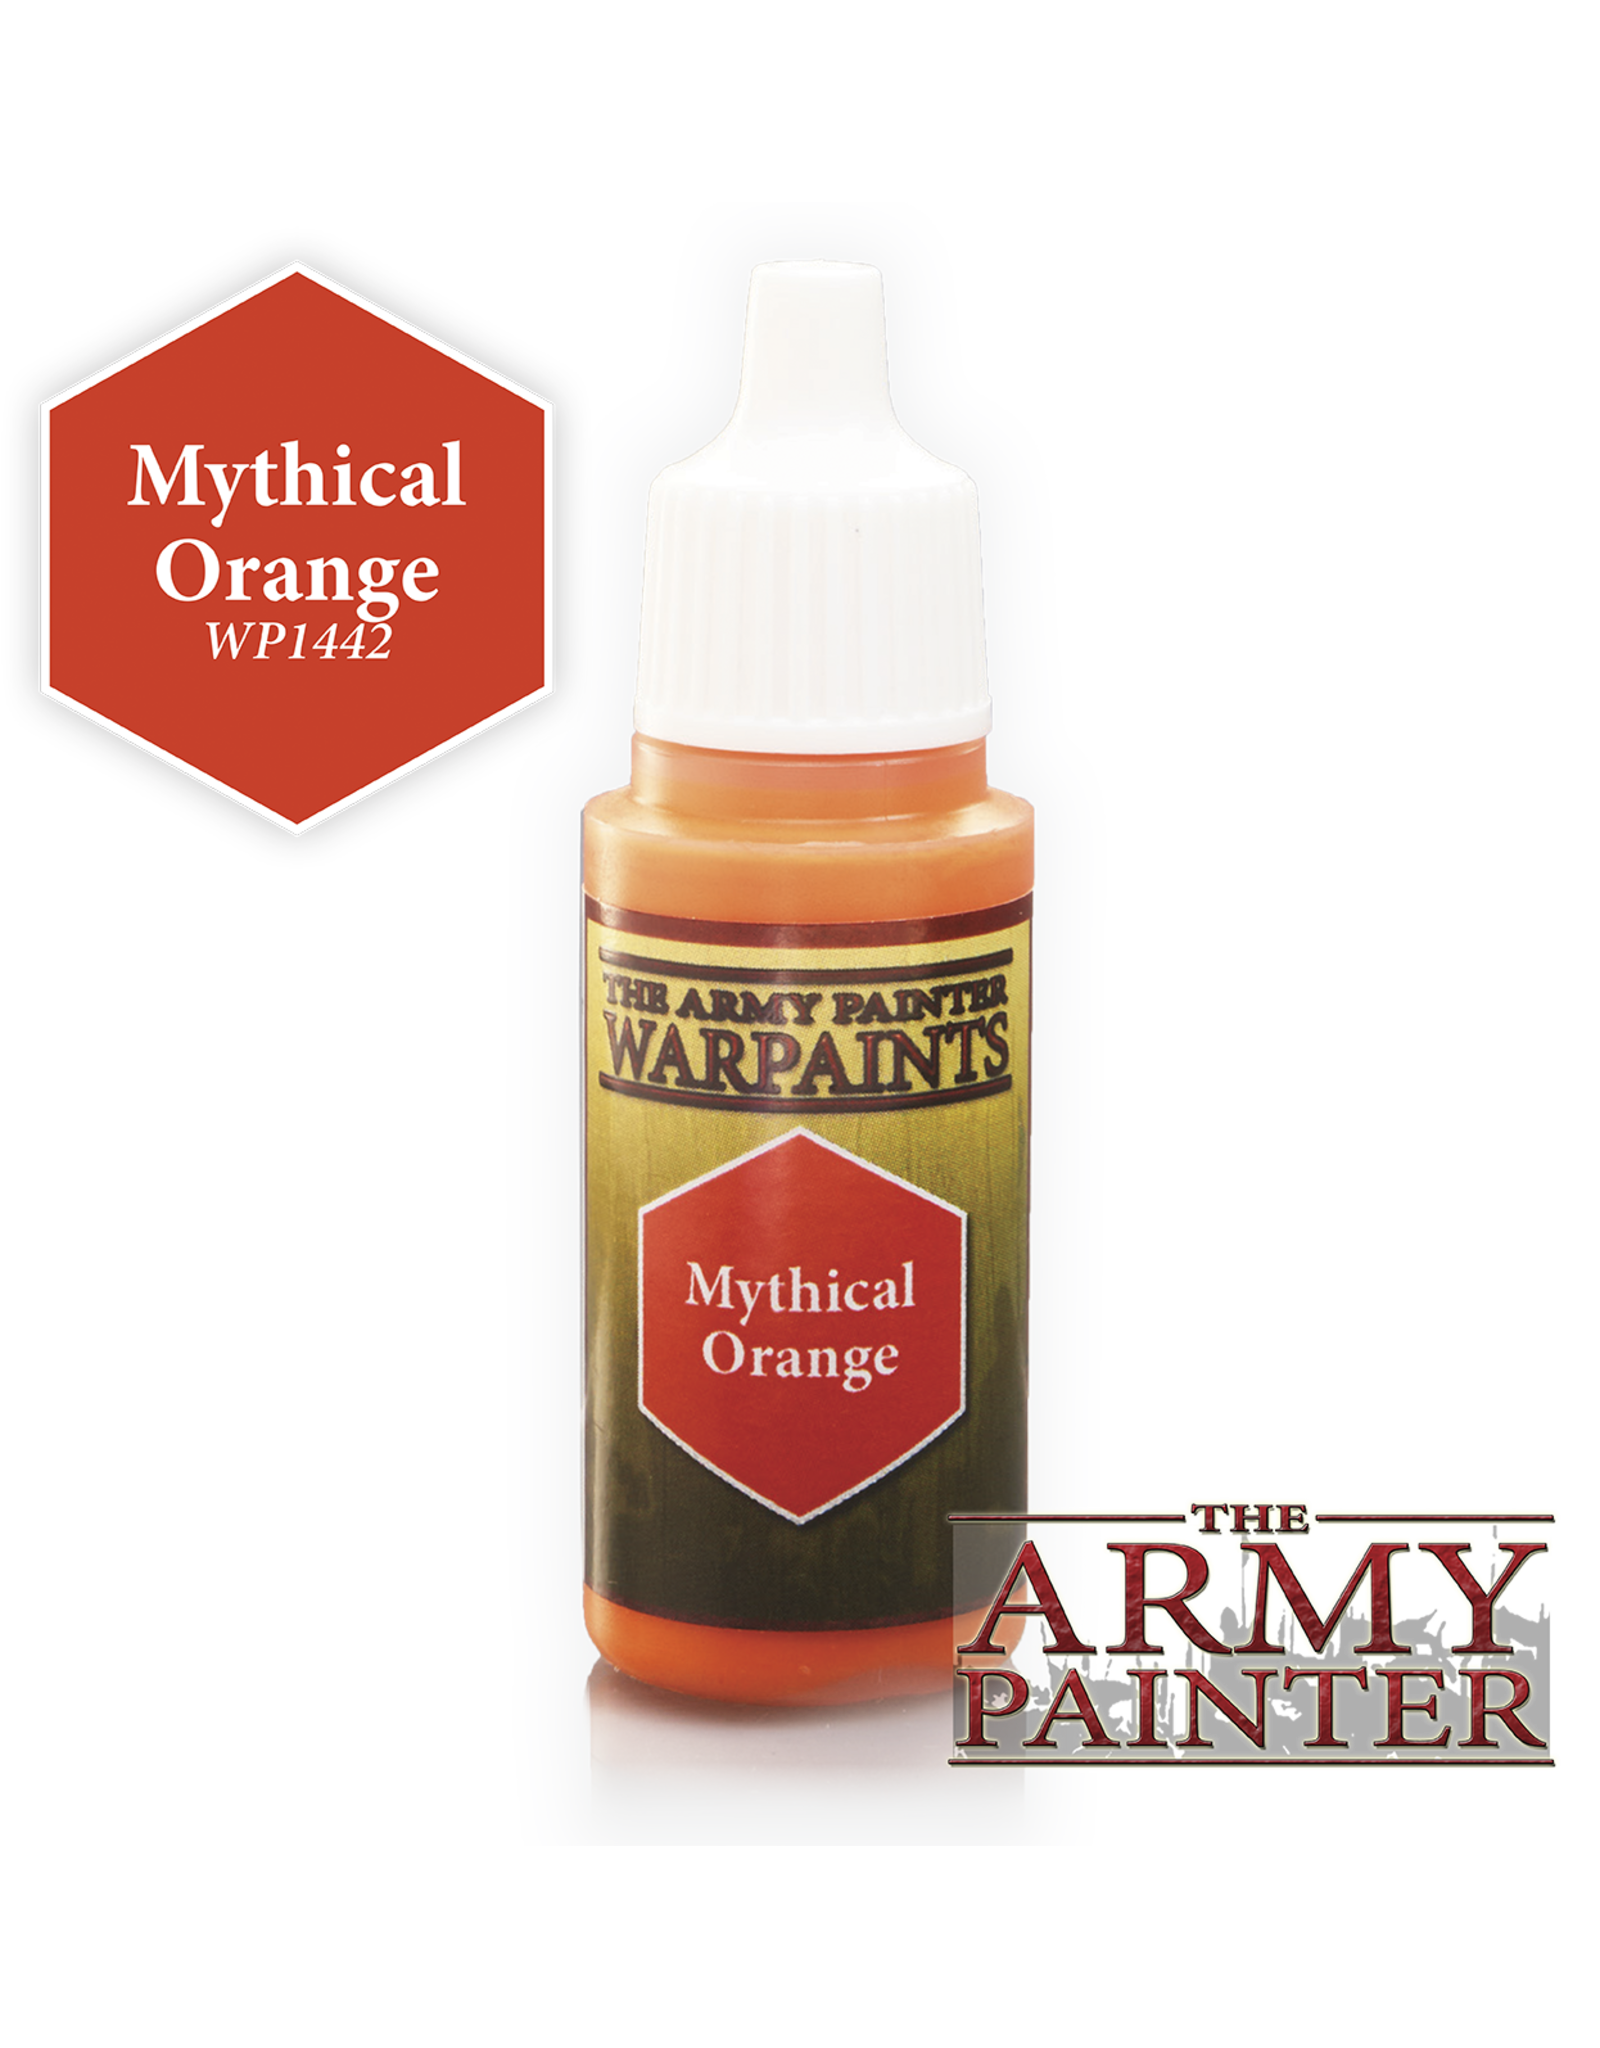 THE ARMY PAINTER ARMY PAINTER WARPAINTS MYTHICAL ORANGE